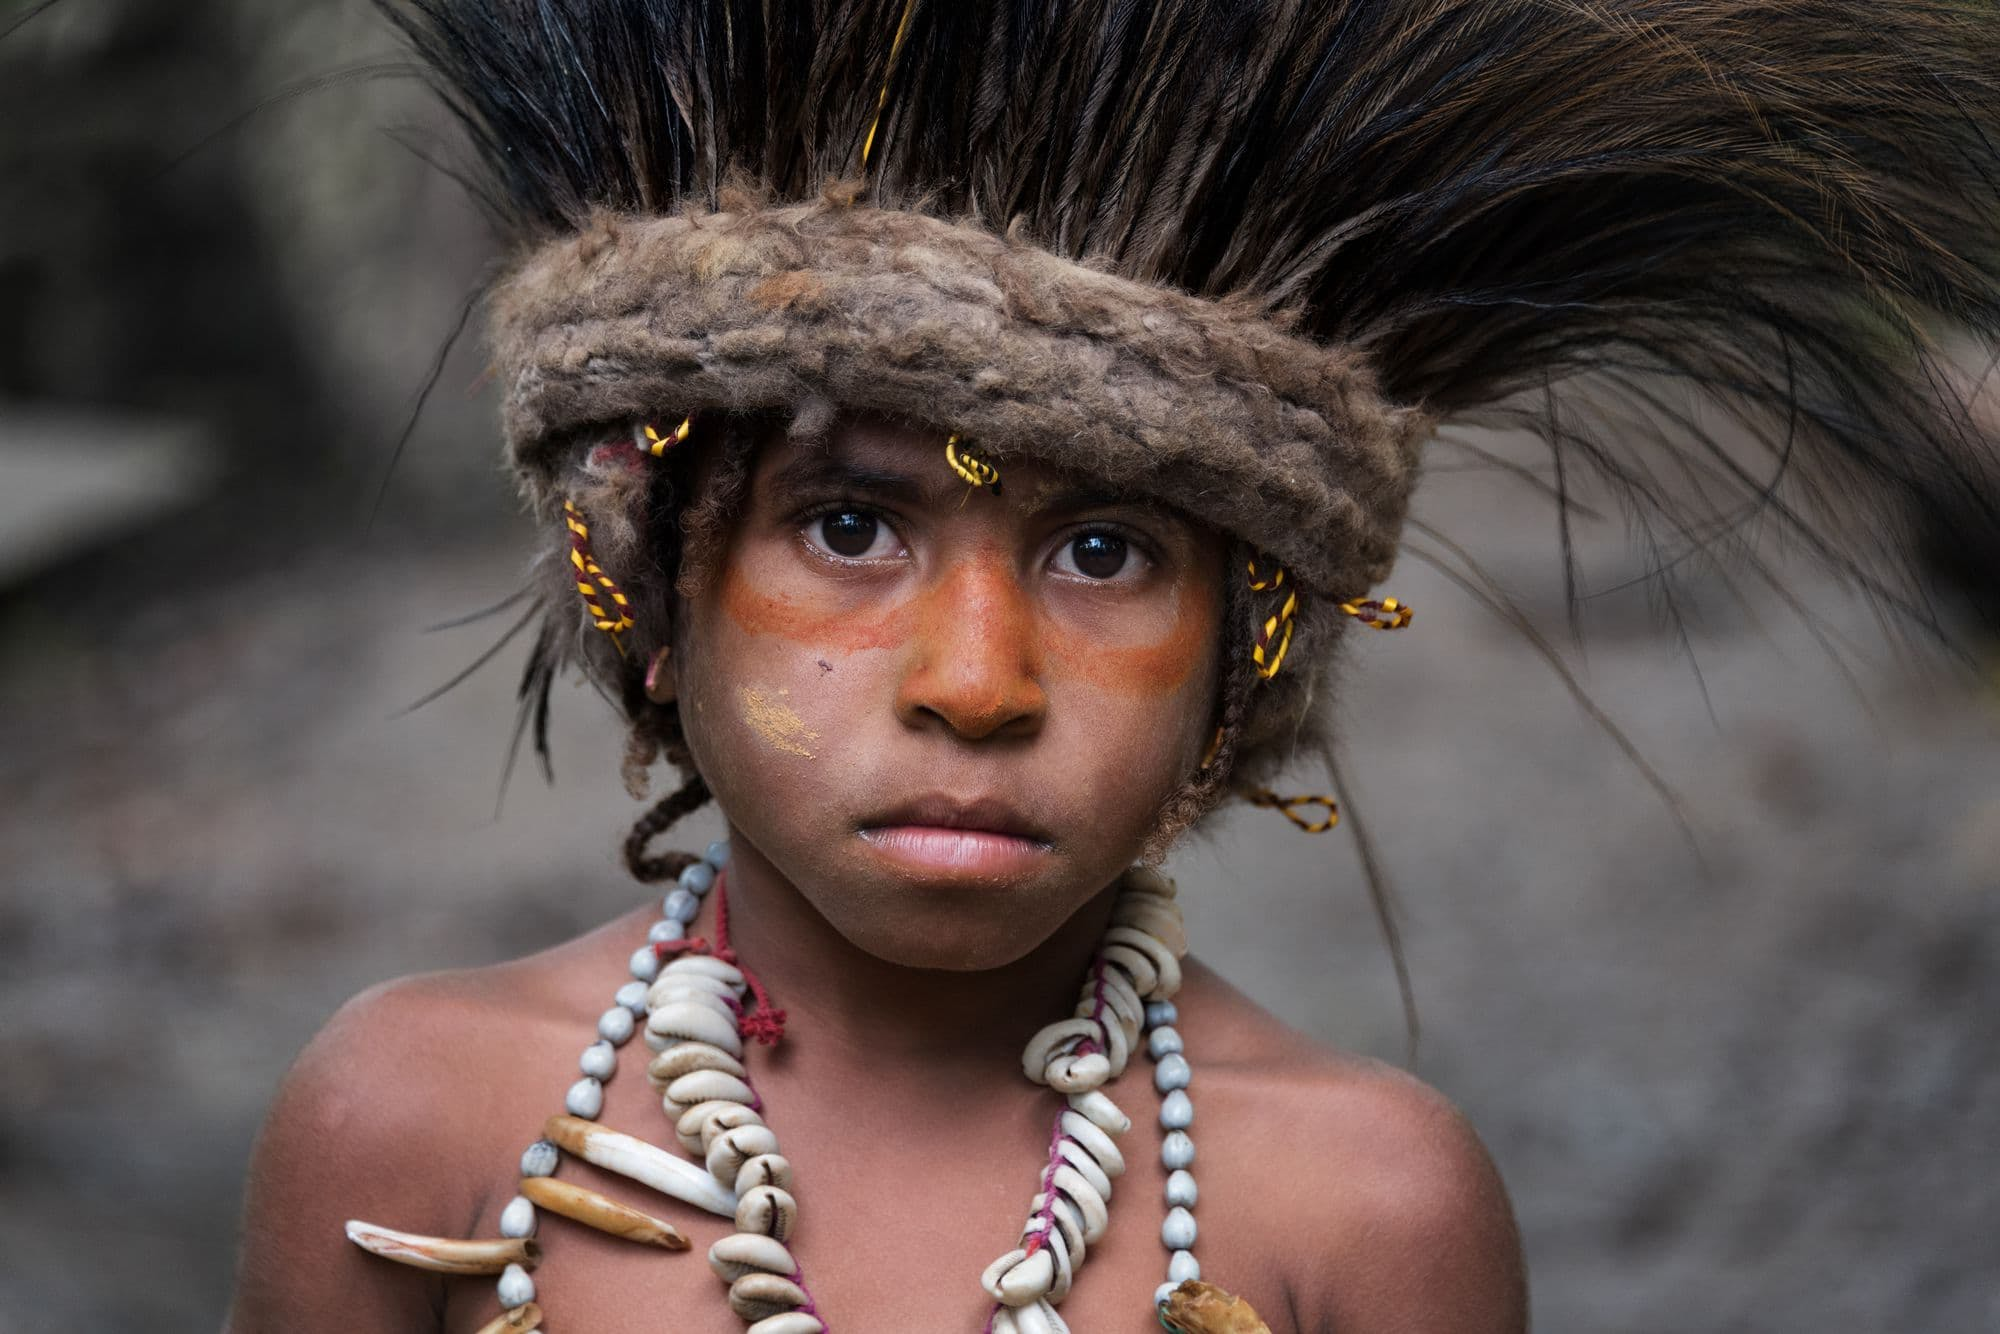 Papua New Guinea by Steve McCurry